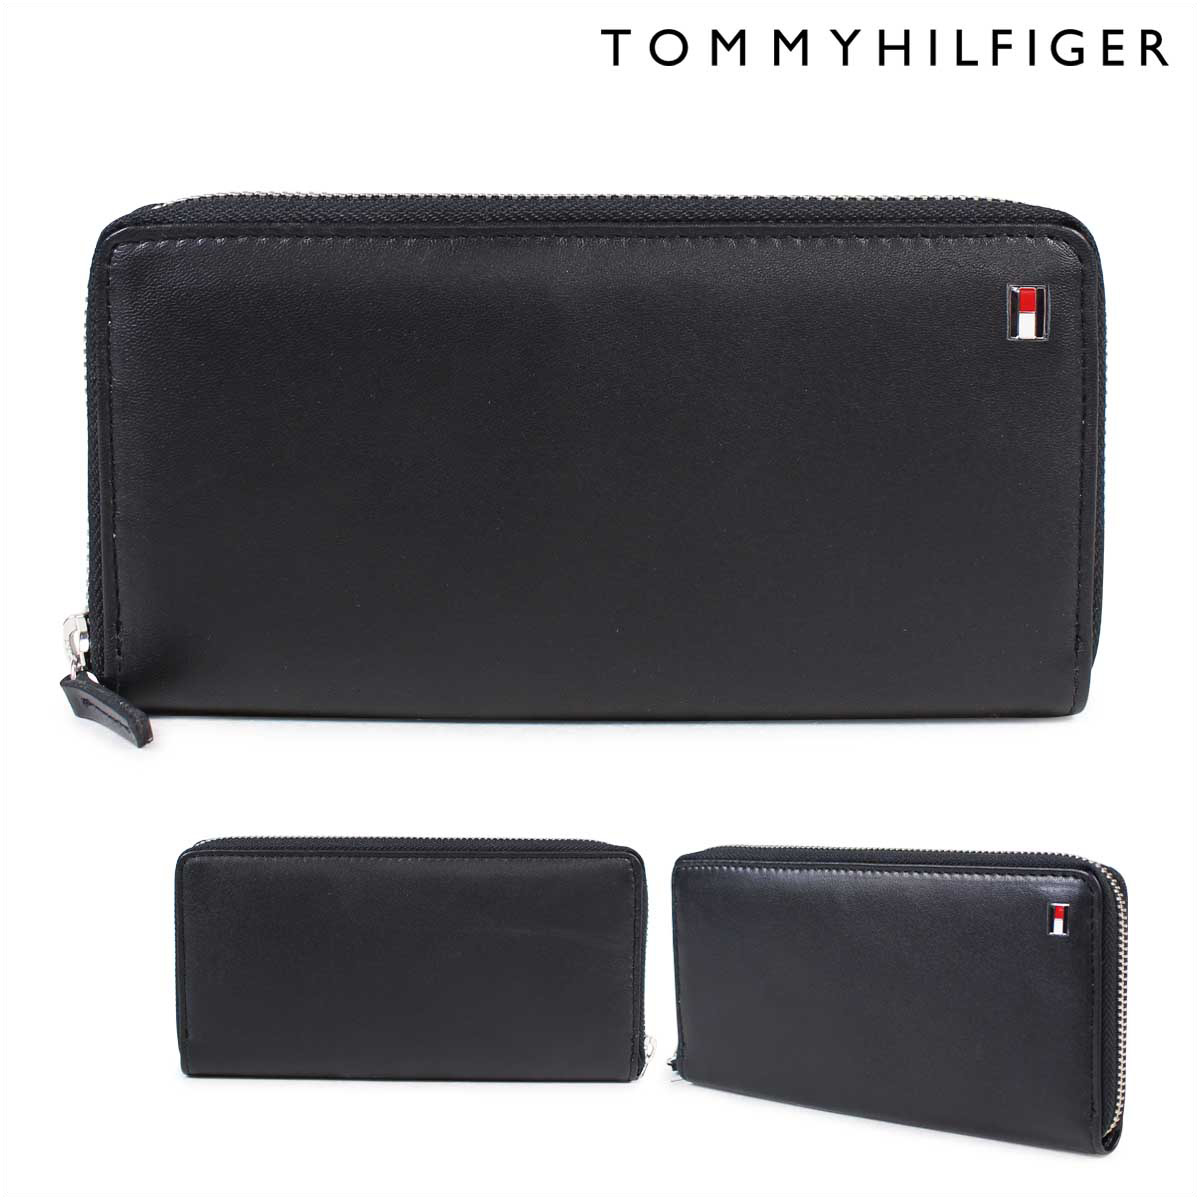 free shipping c29db 98130 TOMMY HILFIGER wallet トミーヒルフィガー long wallet men round fastener leather  OXFORD WALLET 4691 31TL13X009-001 black black